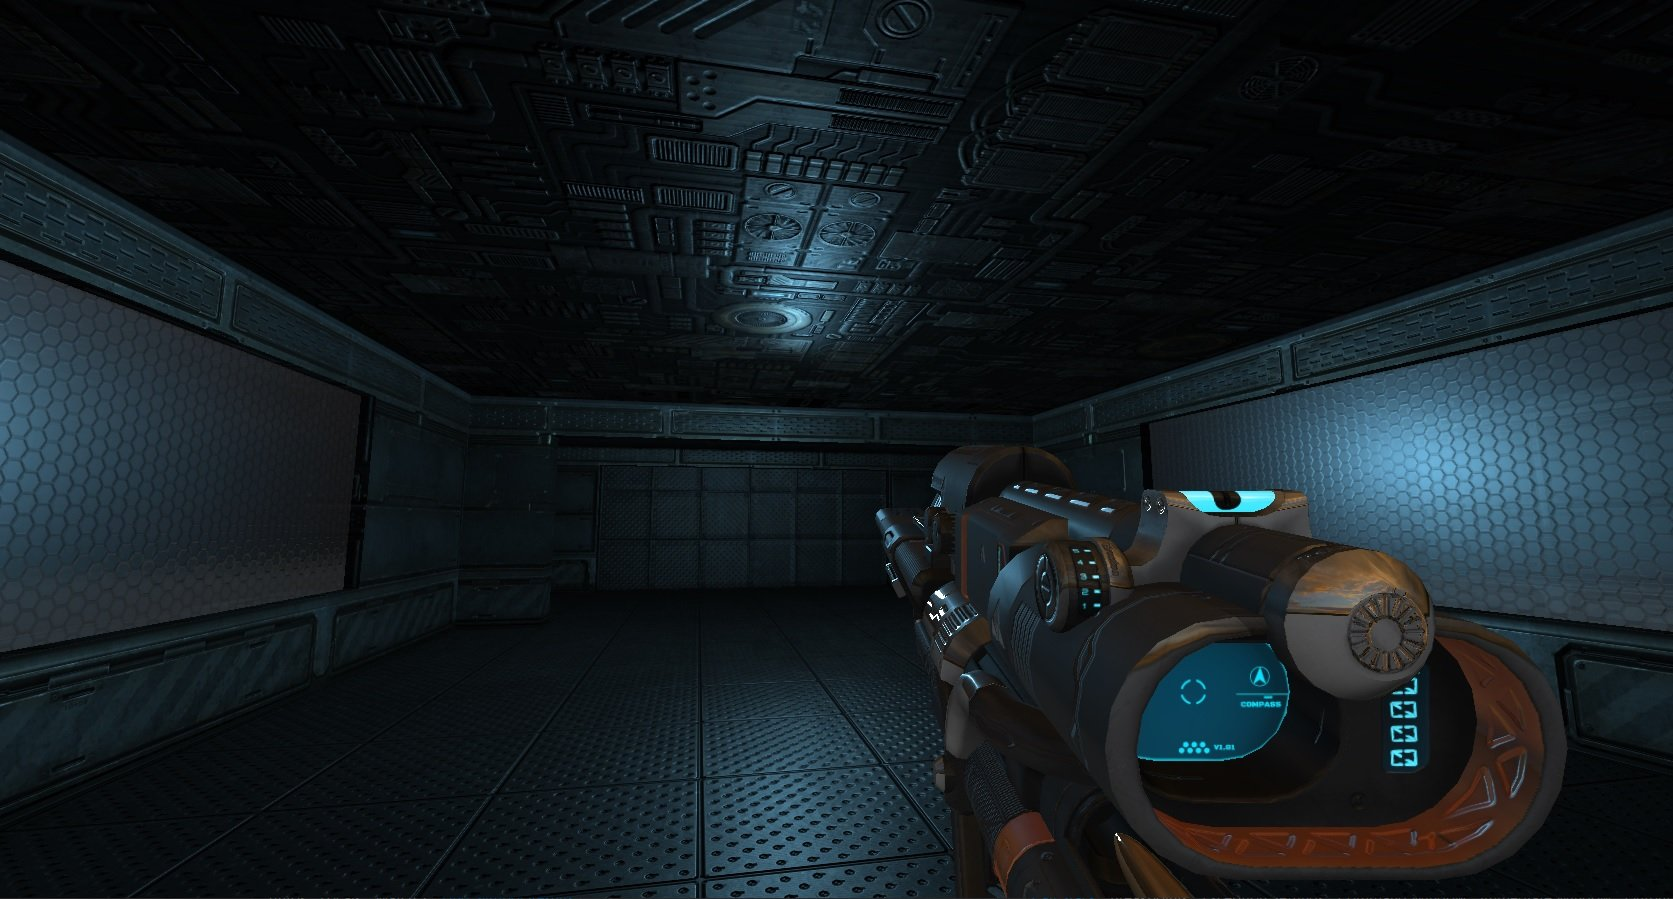 Leadwerks 5 beta first-person shooter template